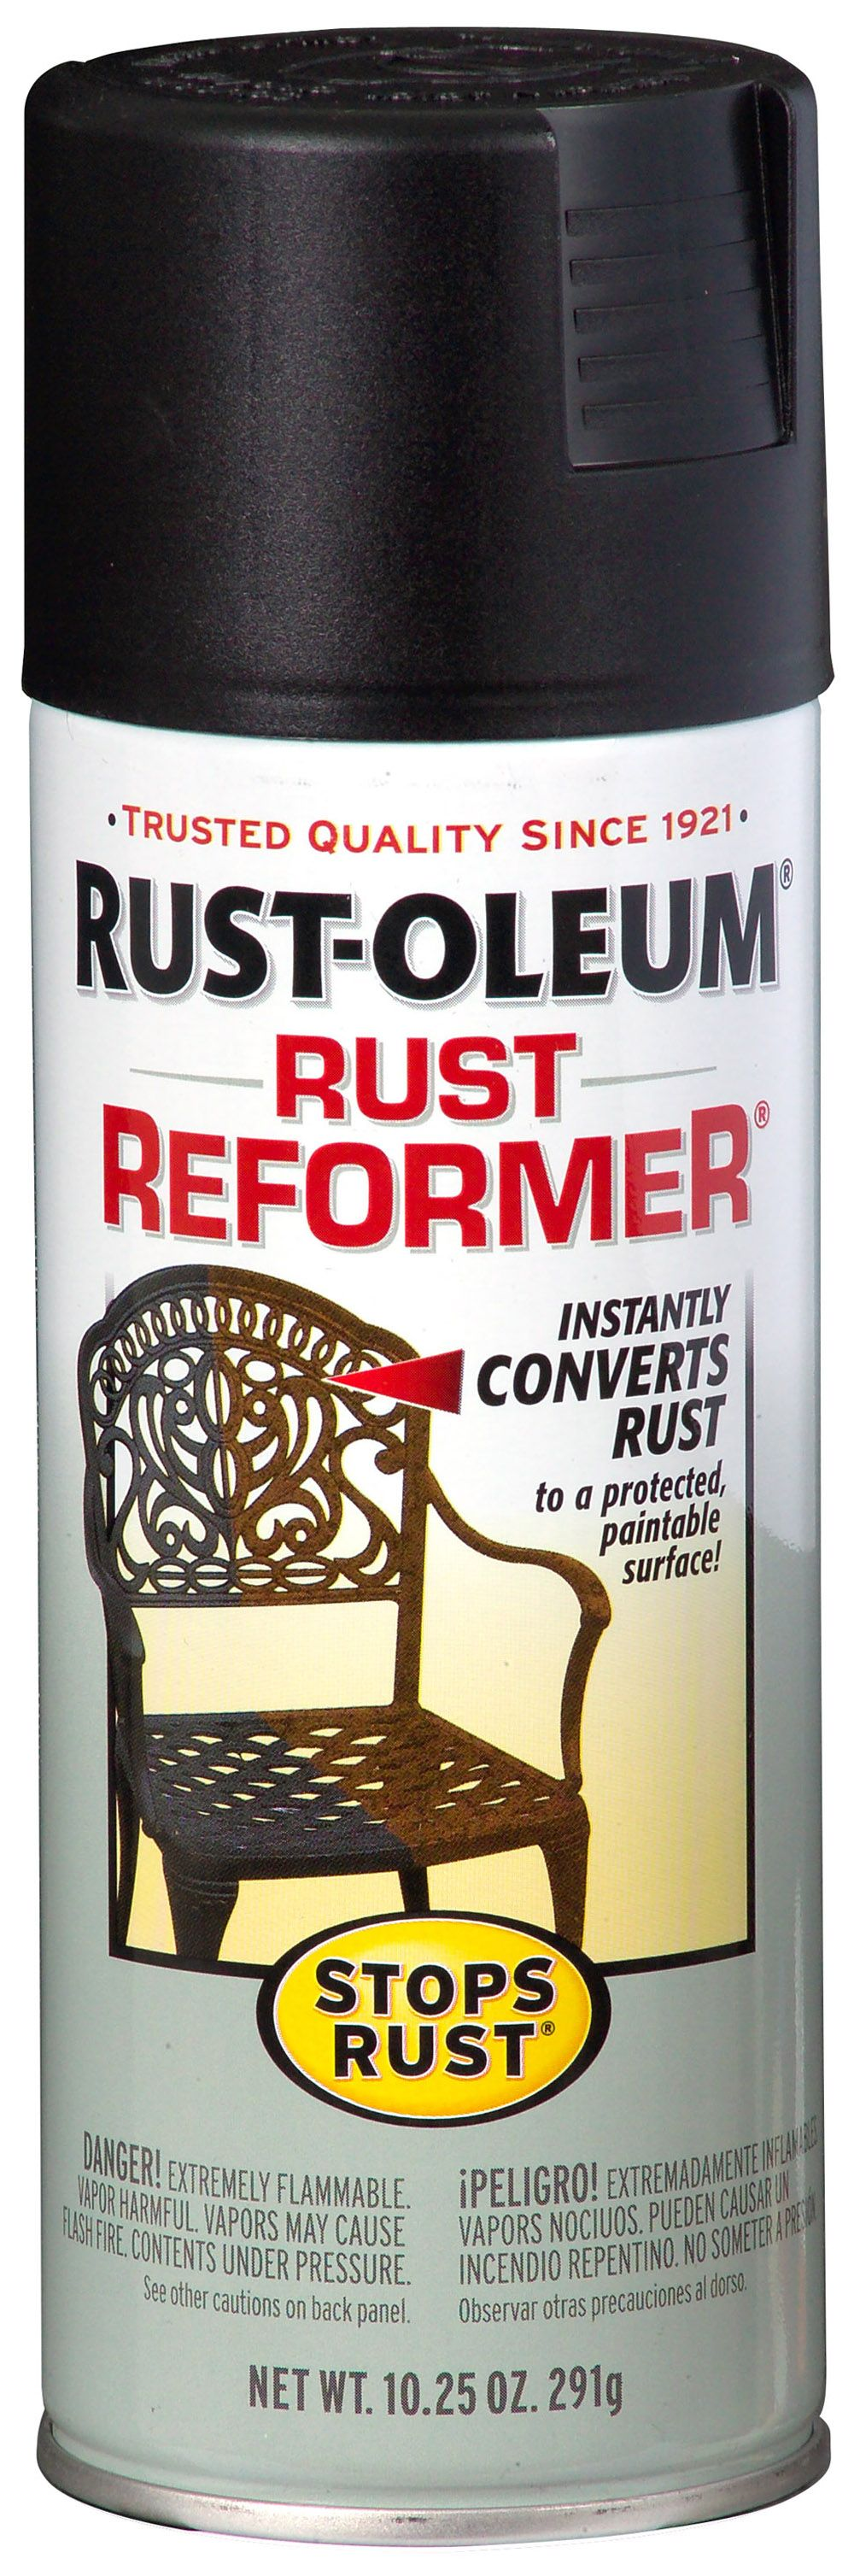 215215 RUST-OLEUM Rust Converter Used To Convert Rust In To a